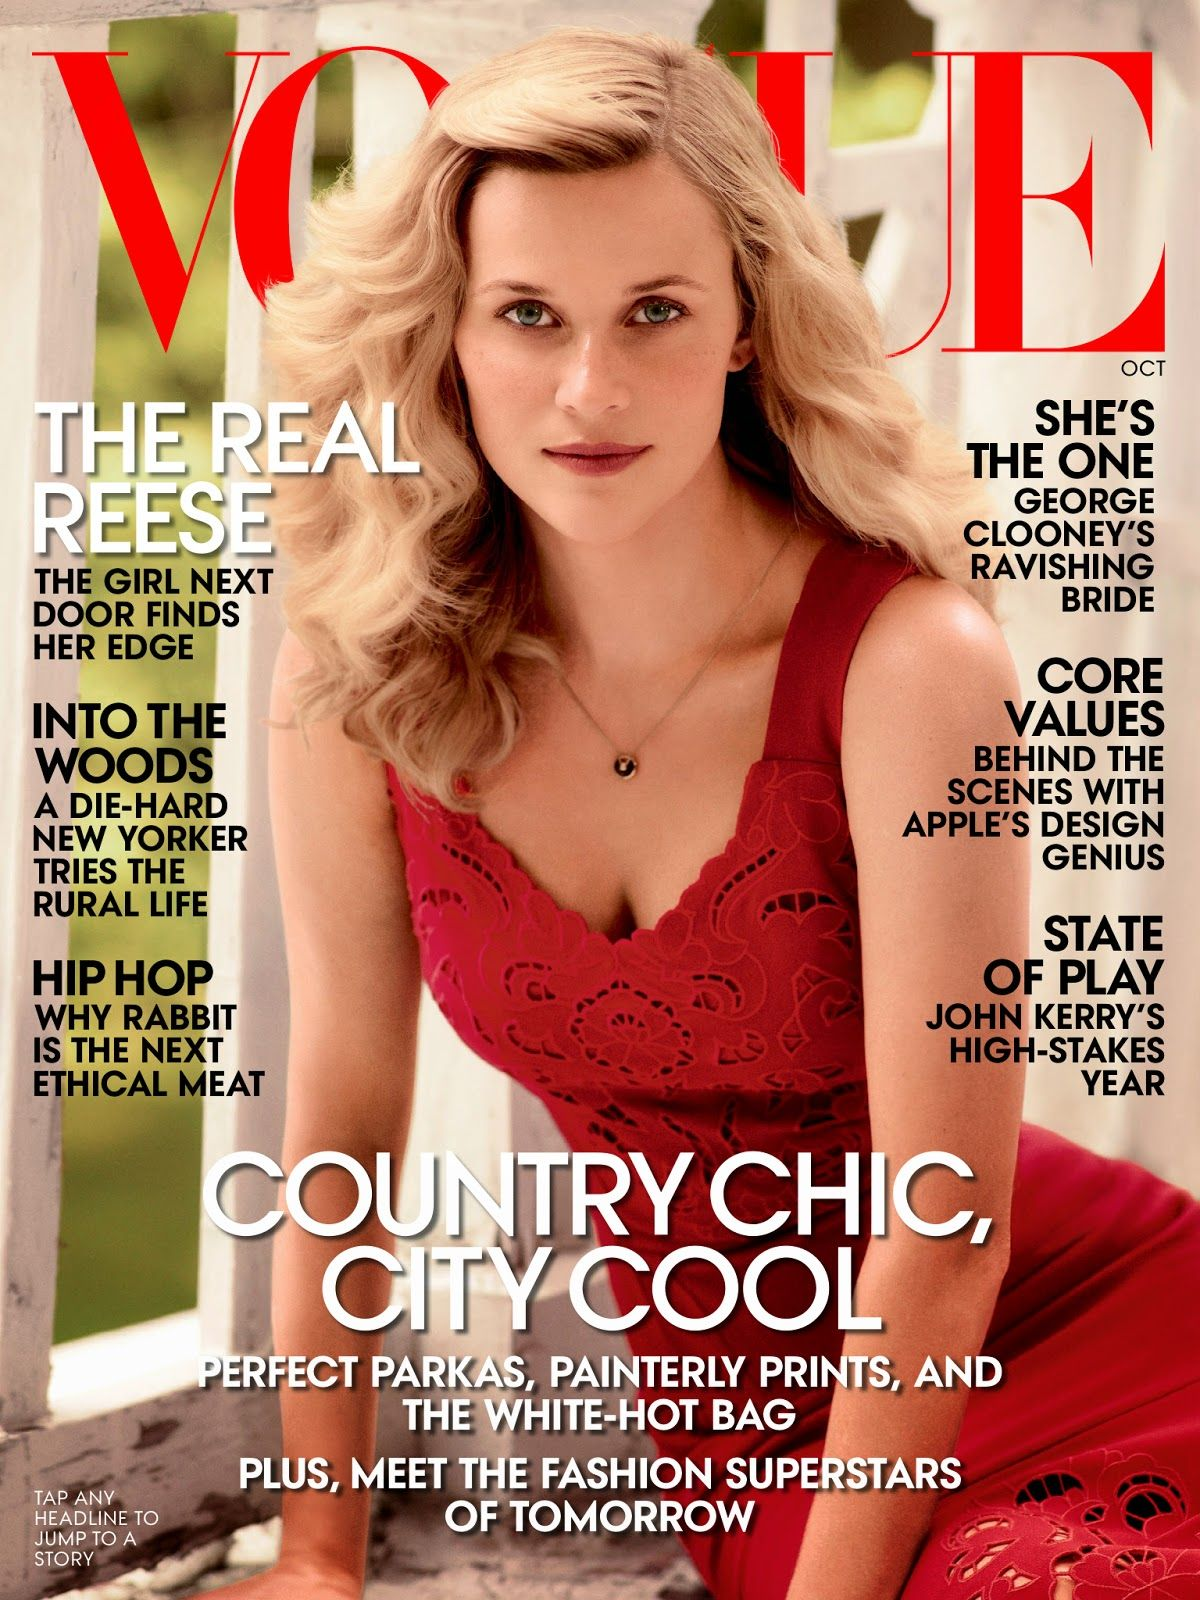 Reese Witherspoon by Mikael Jansson for Vogue UK October 2014